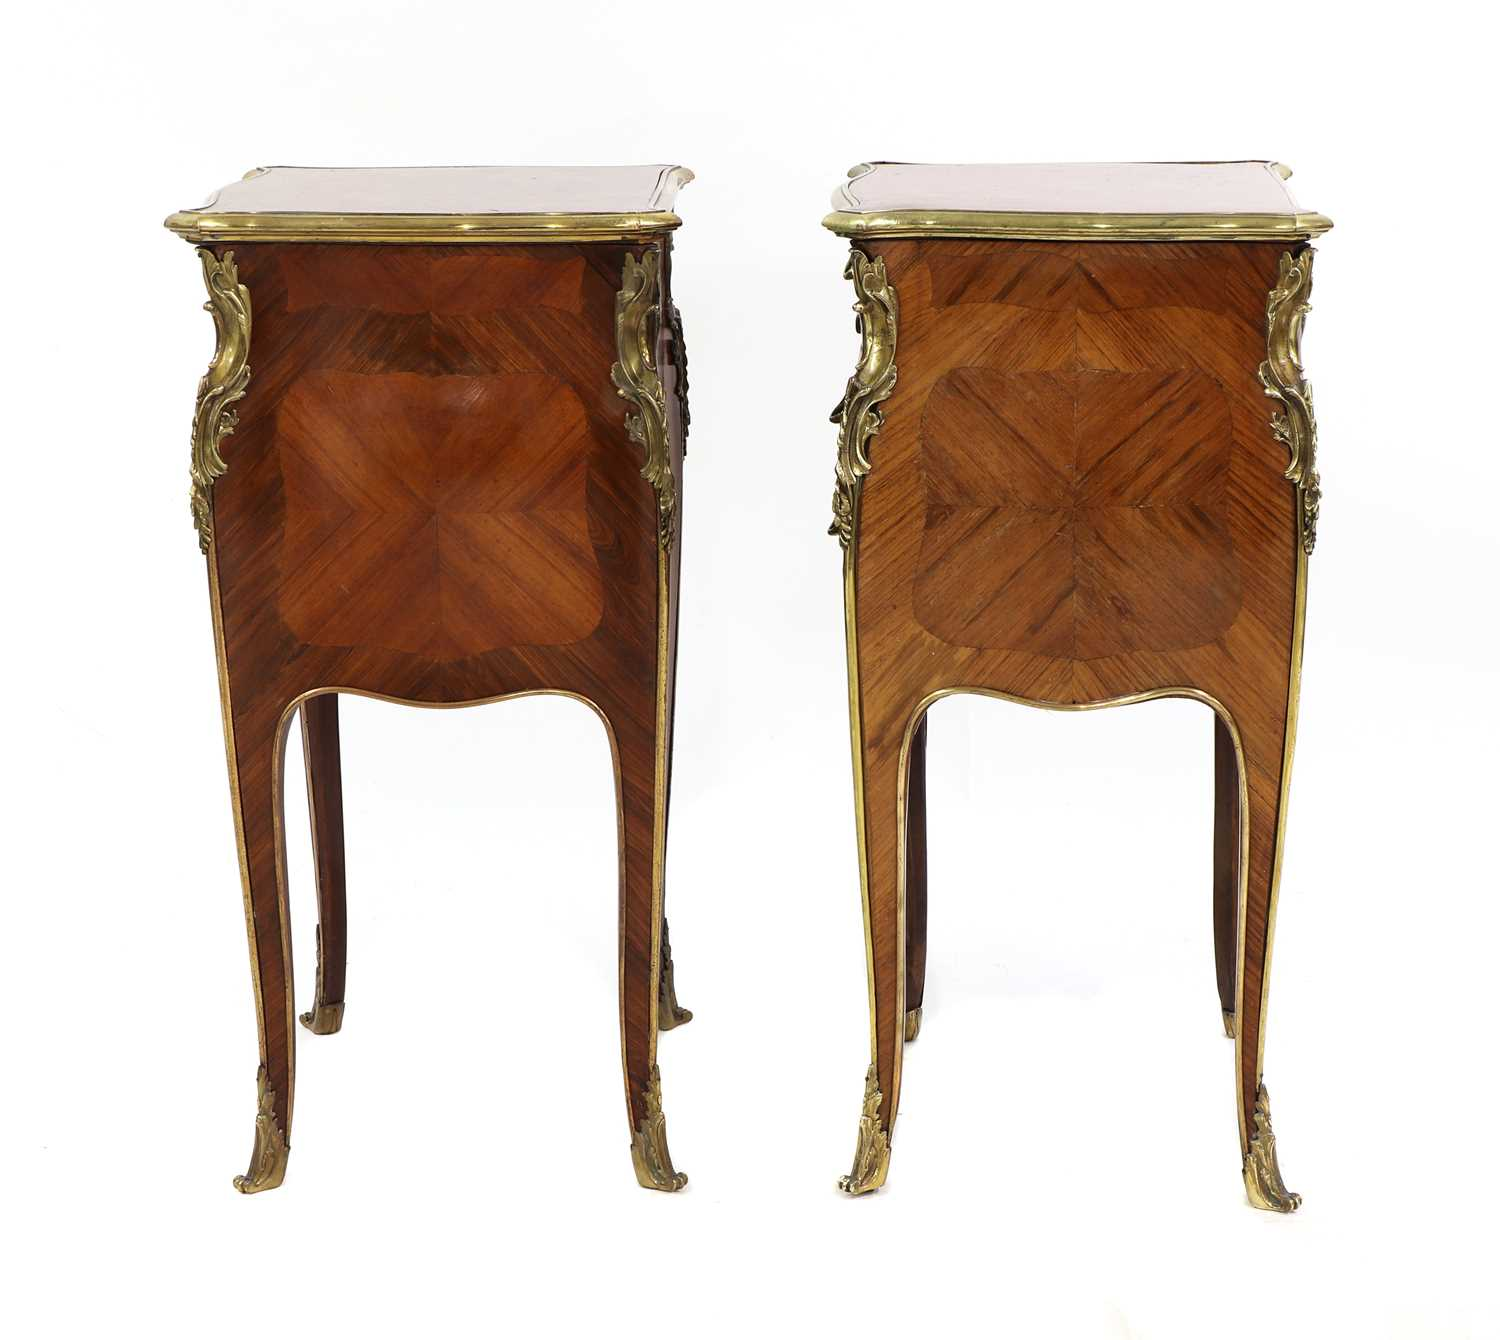 A pair of French Louis XV-style kingwood and ormolu night tables, - Image 2 of 9